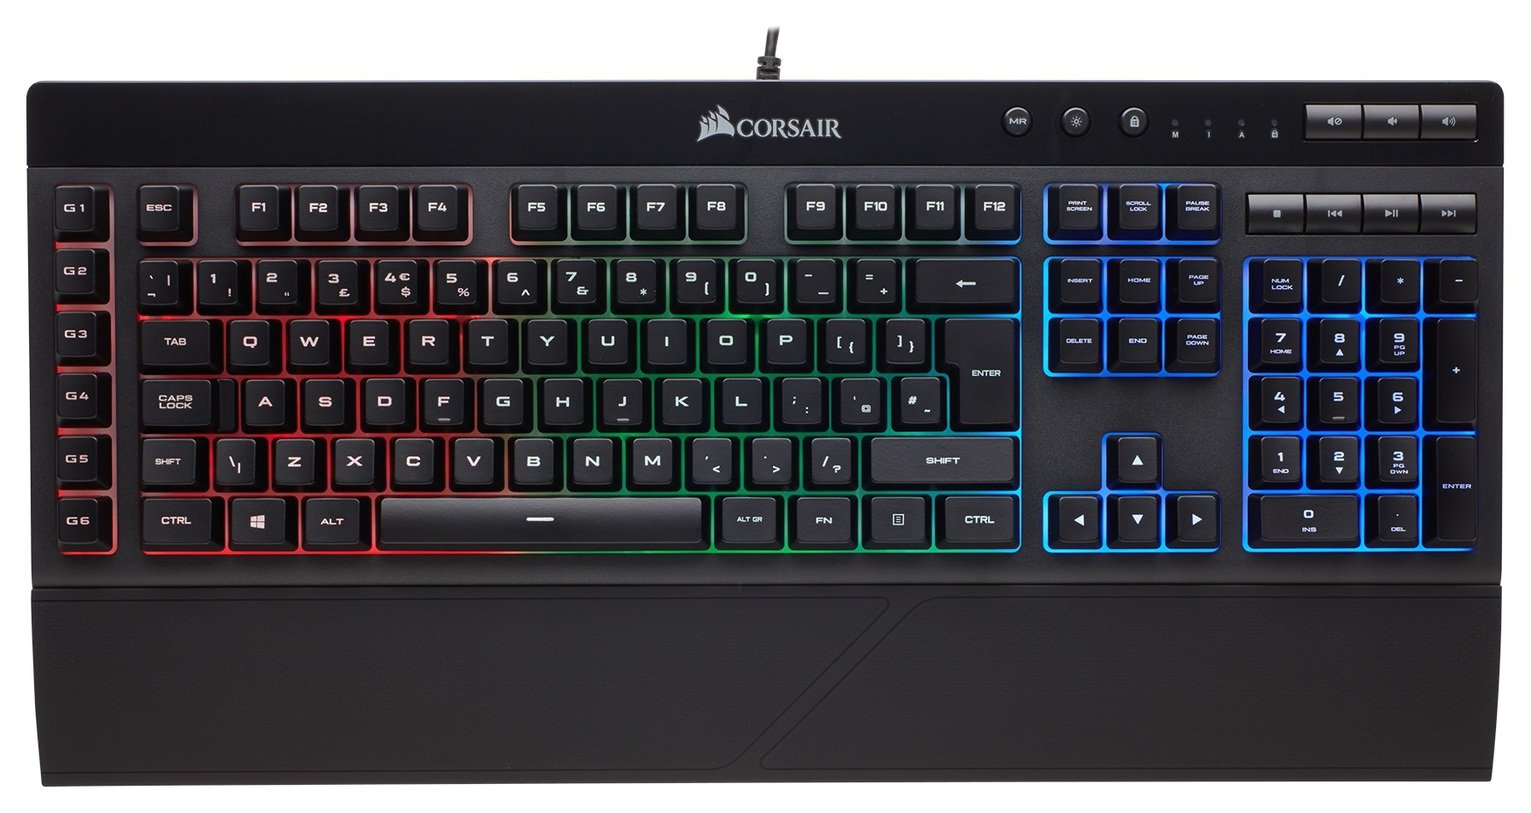 Corsair K55 RGB Gaming Keyboard review